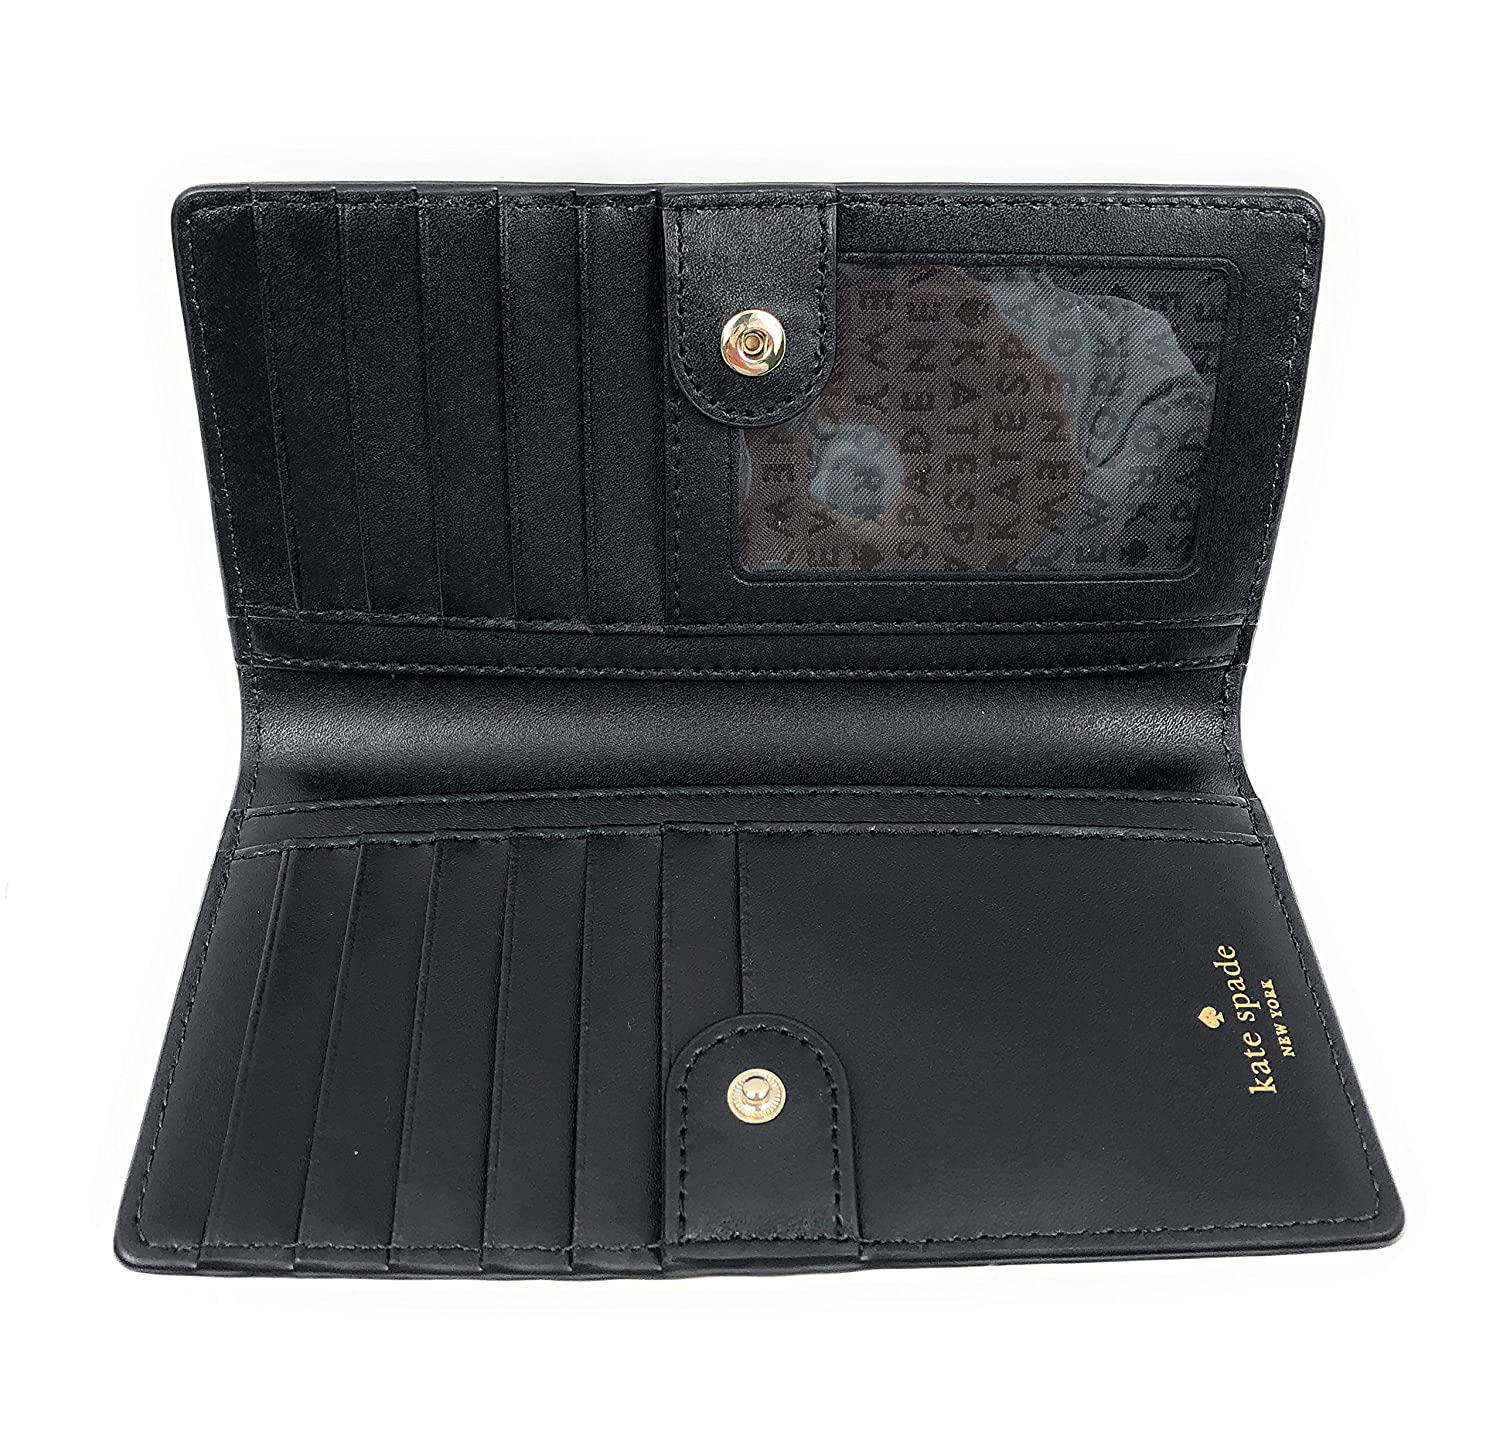 ee64bf215b78 Kate Spade Pearl Stacy Serrano Place Black Leather Wallet Clutch ...